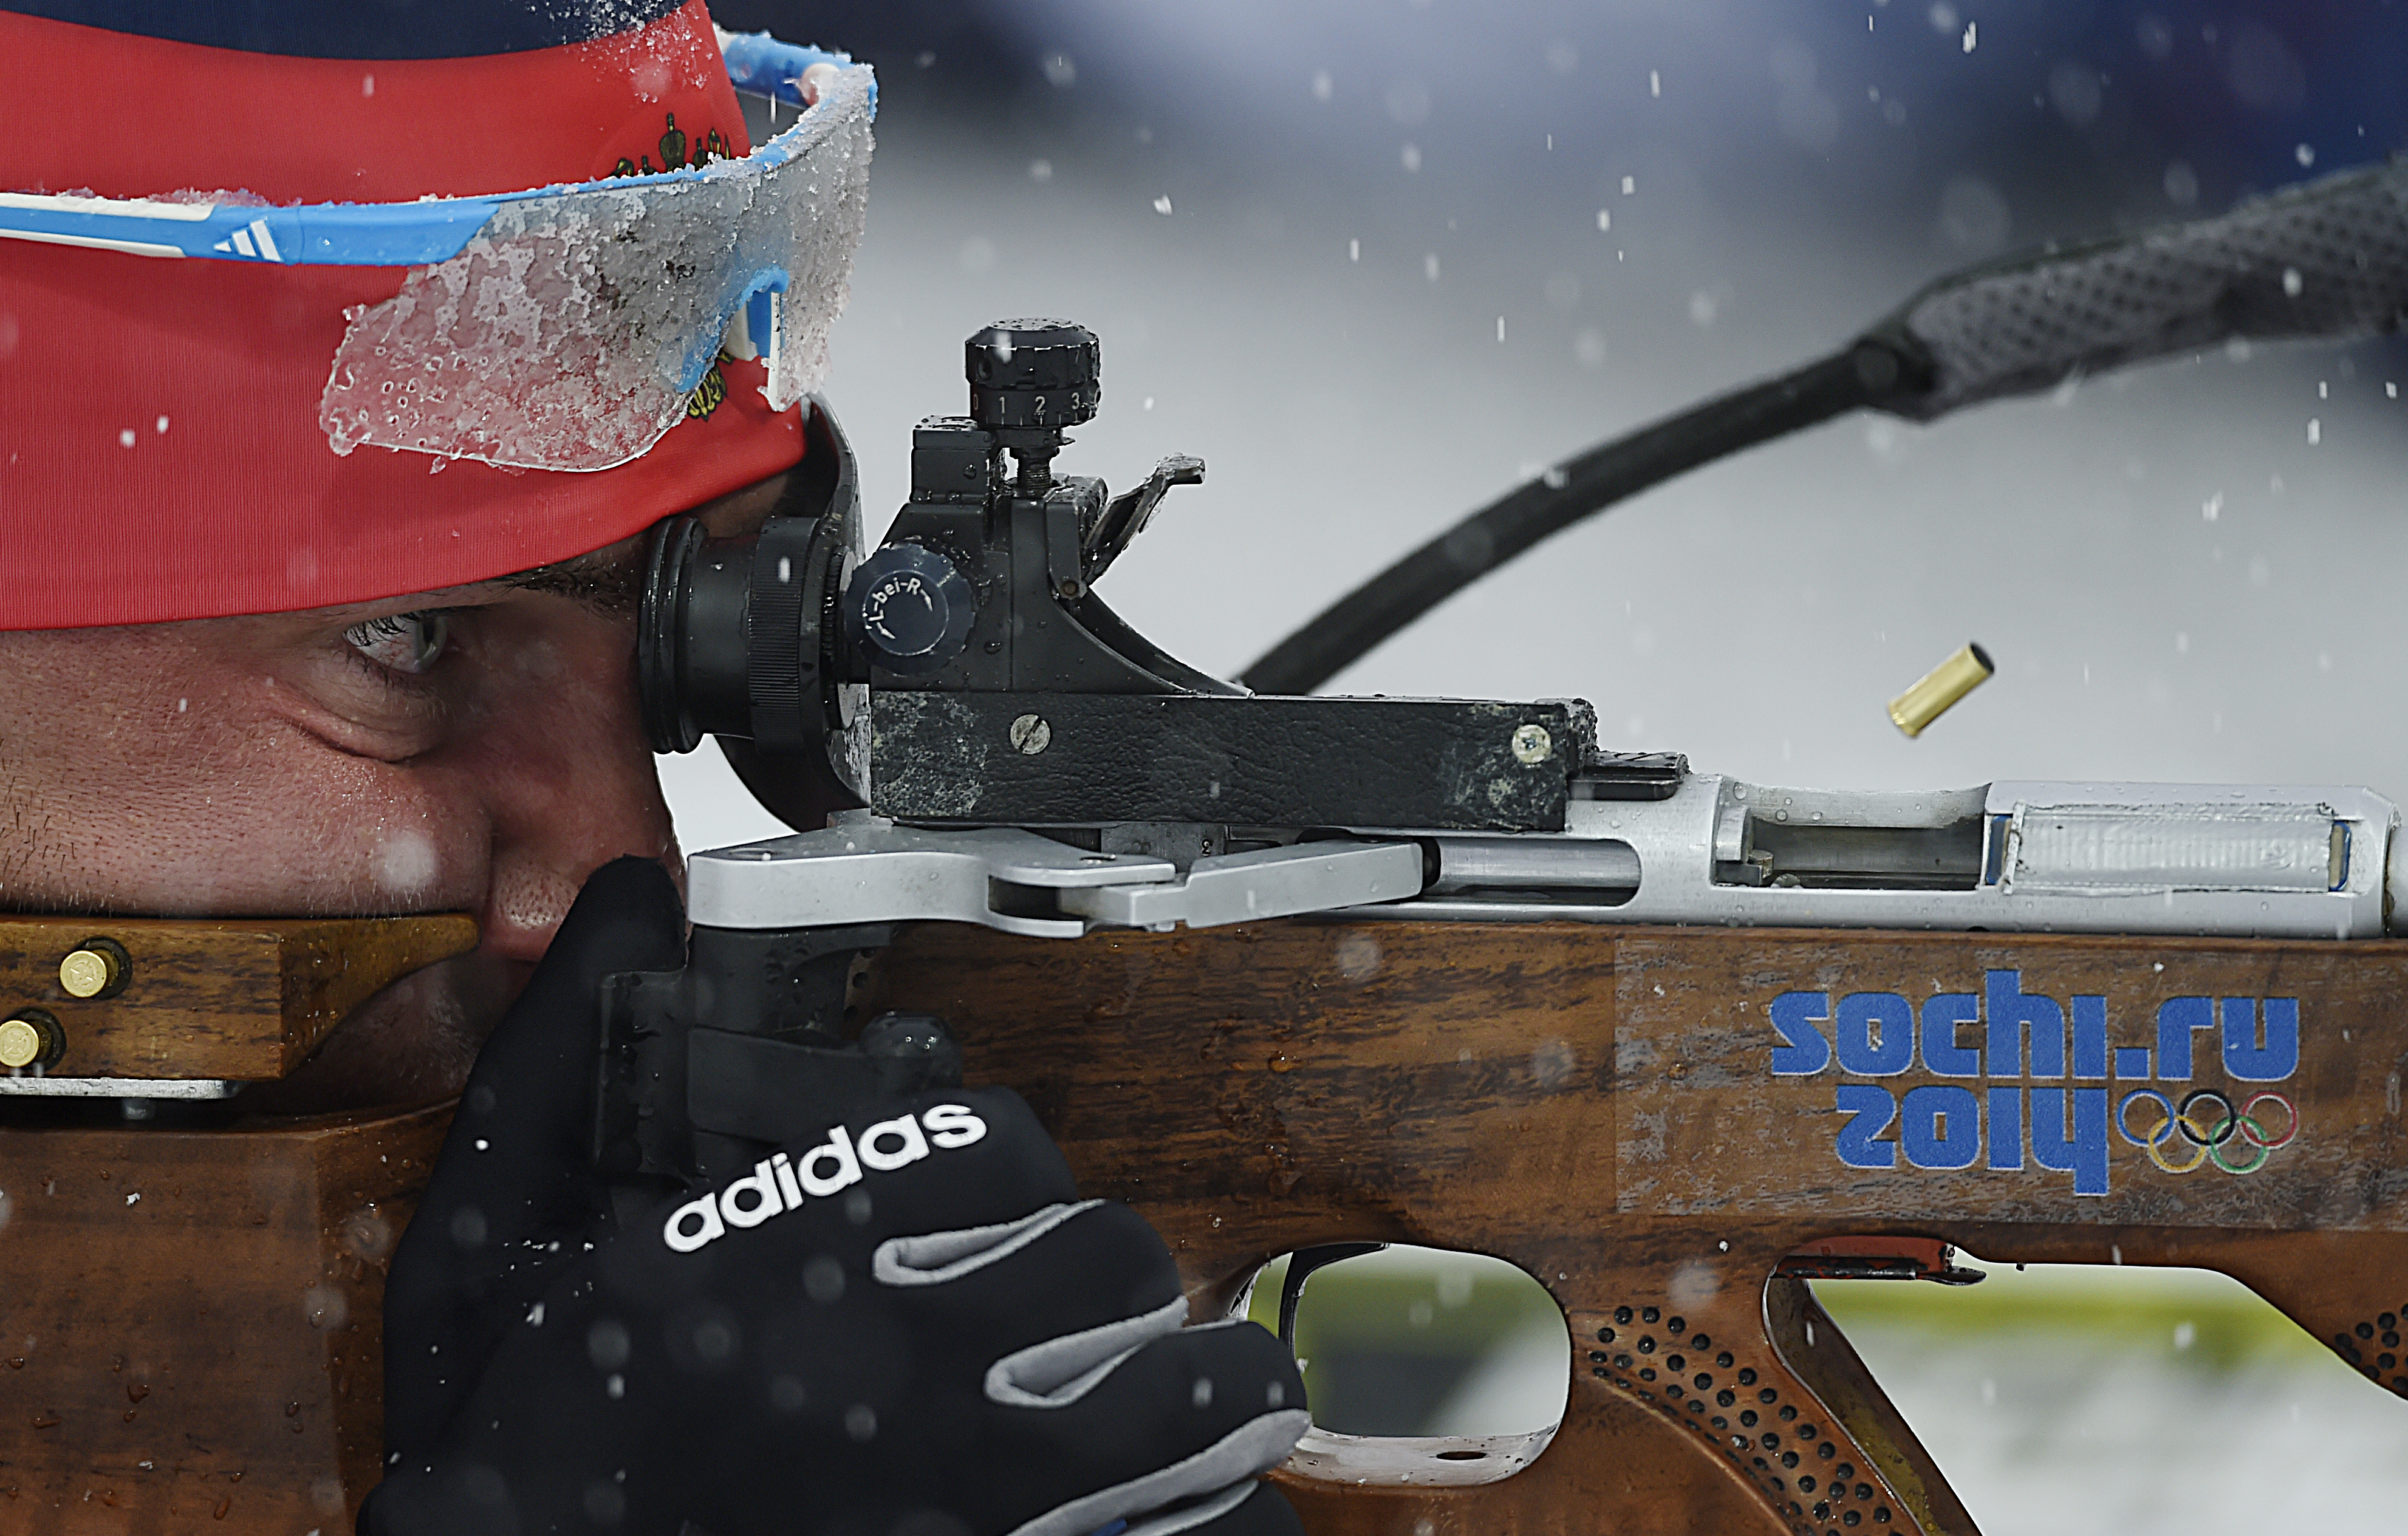 Evgeniy Garanichev of Russia in action during the men's 15km Mass Start competition at the Laura Cross Biathlon Center.